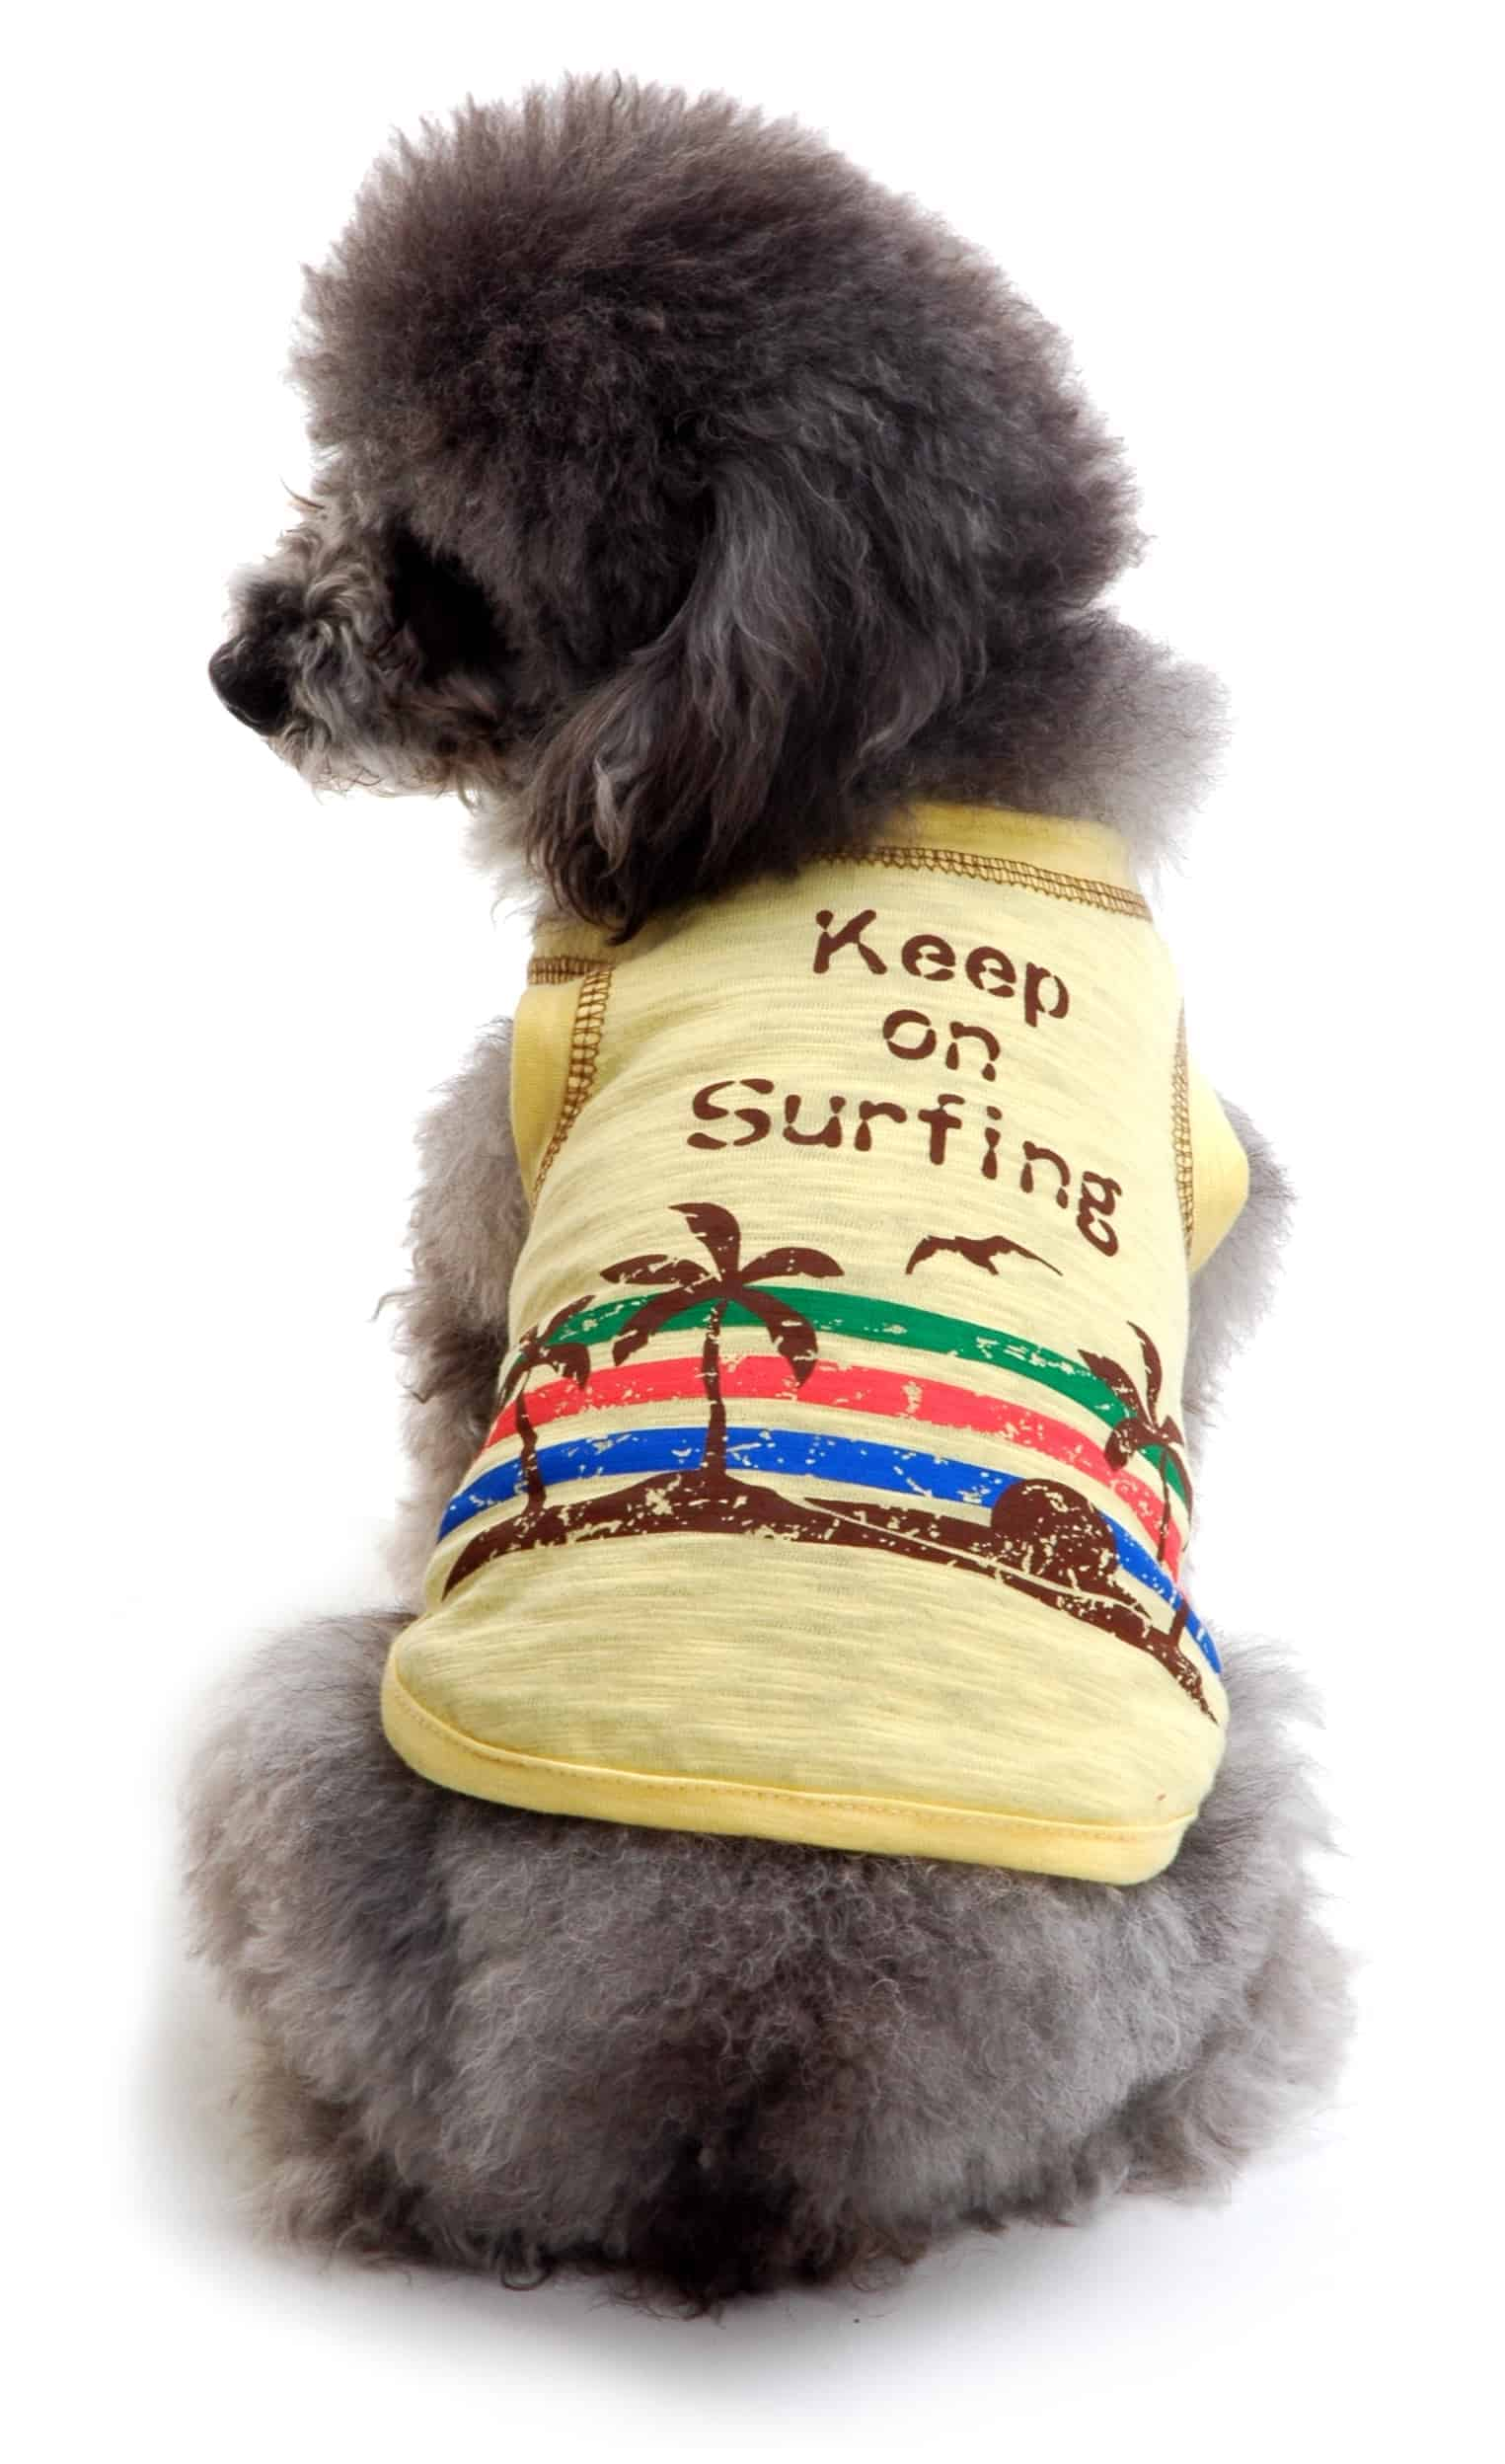 Surfing Dog Shirt